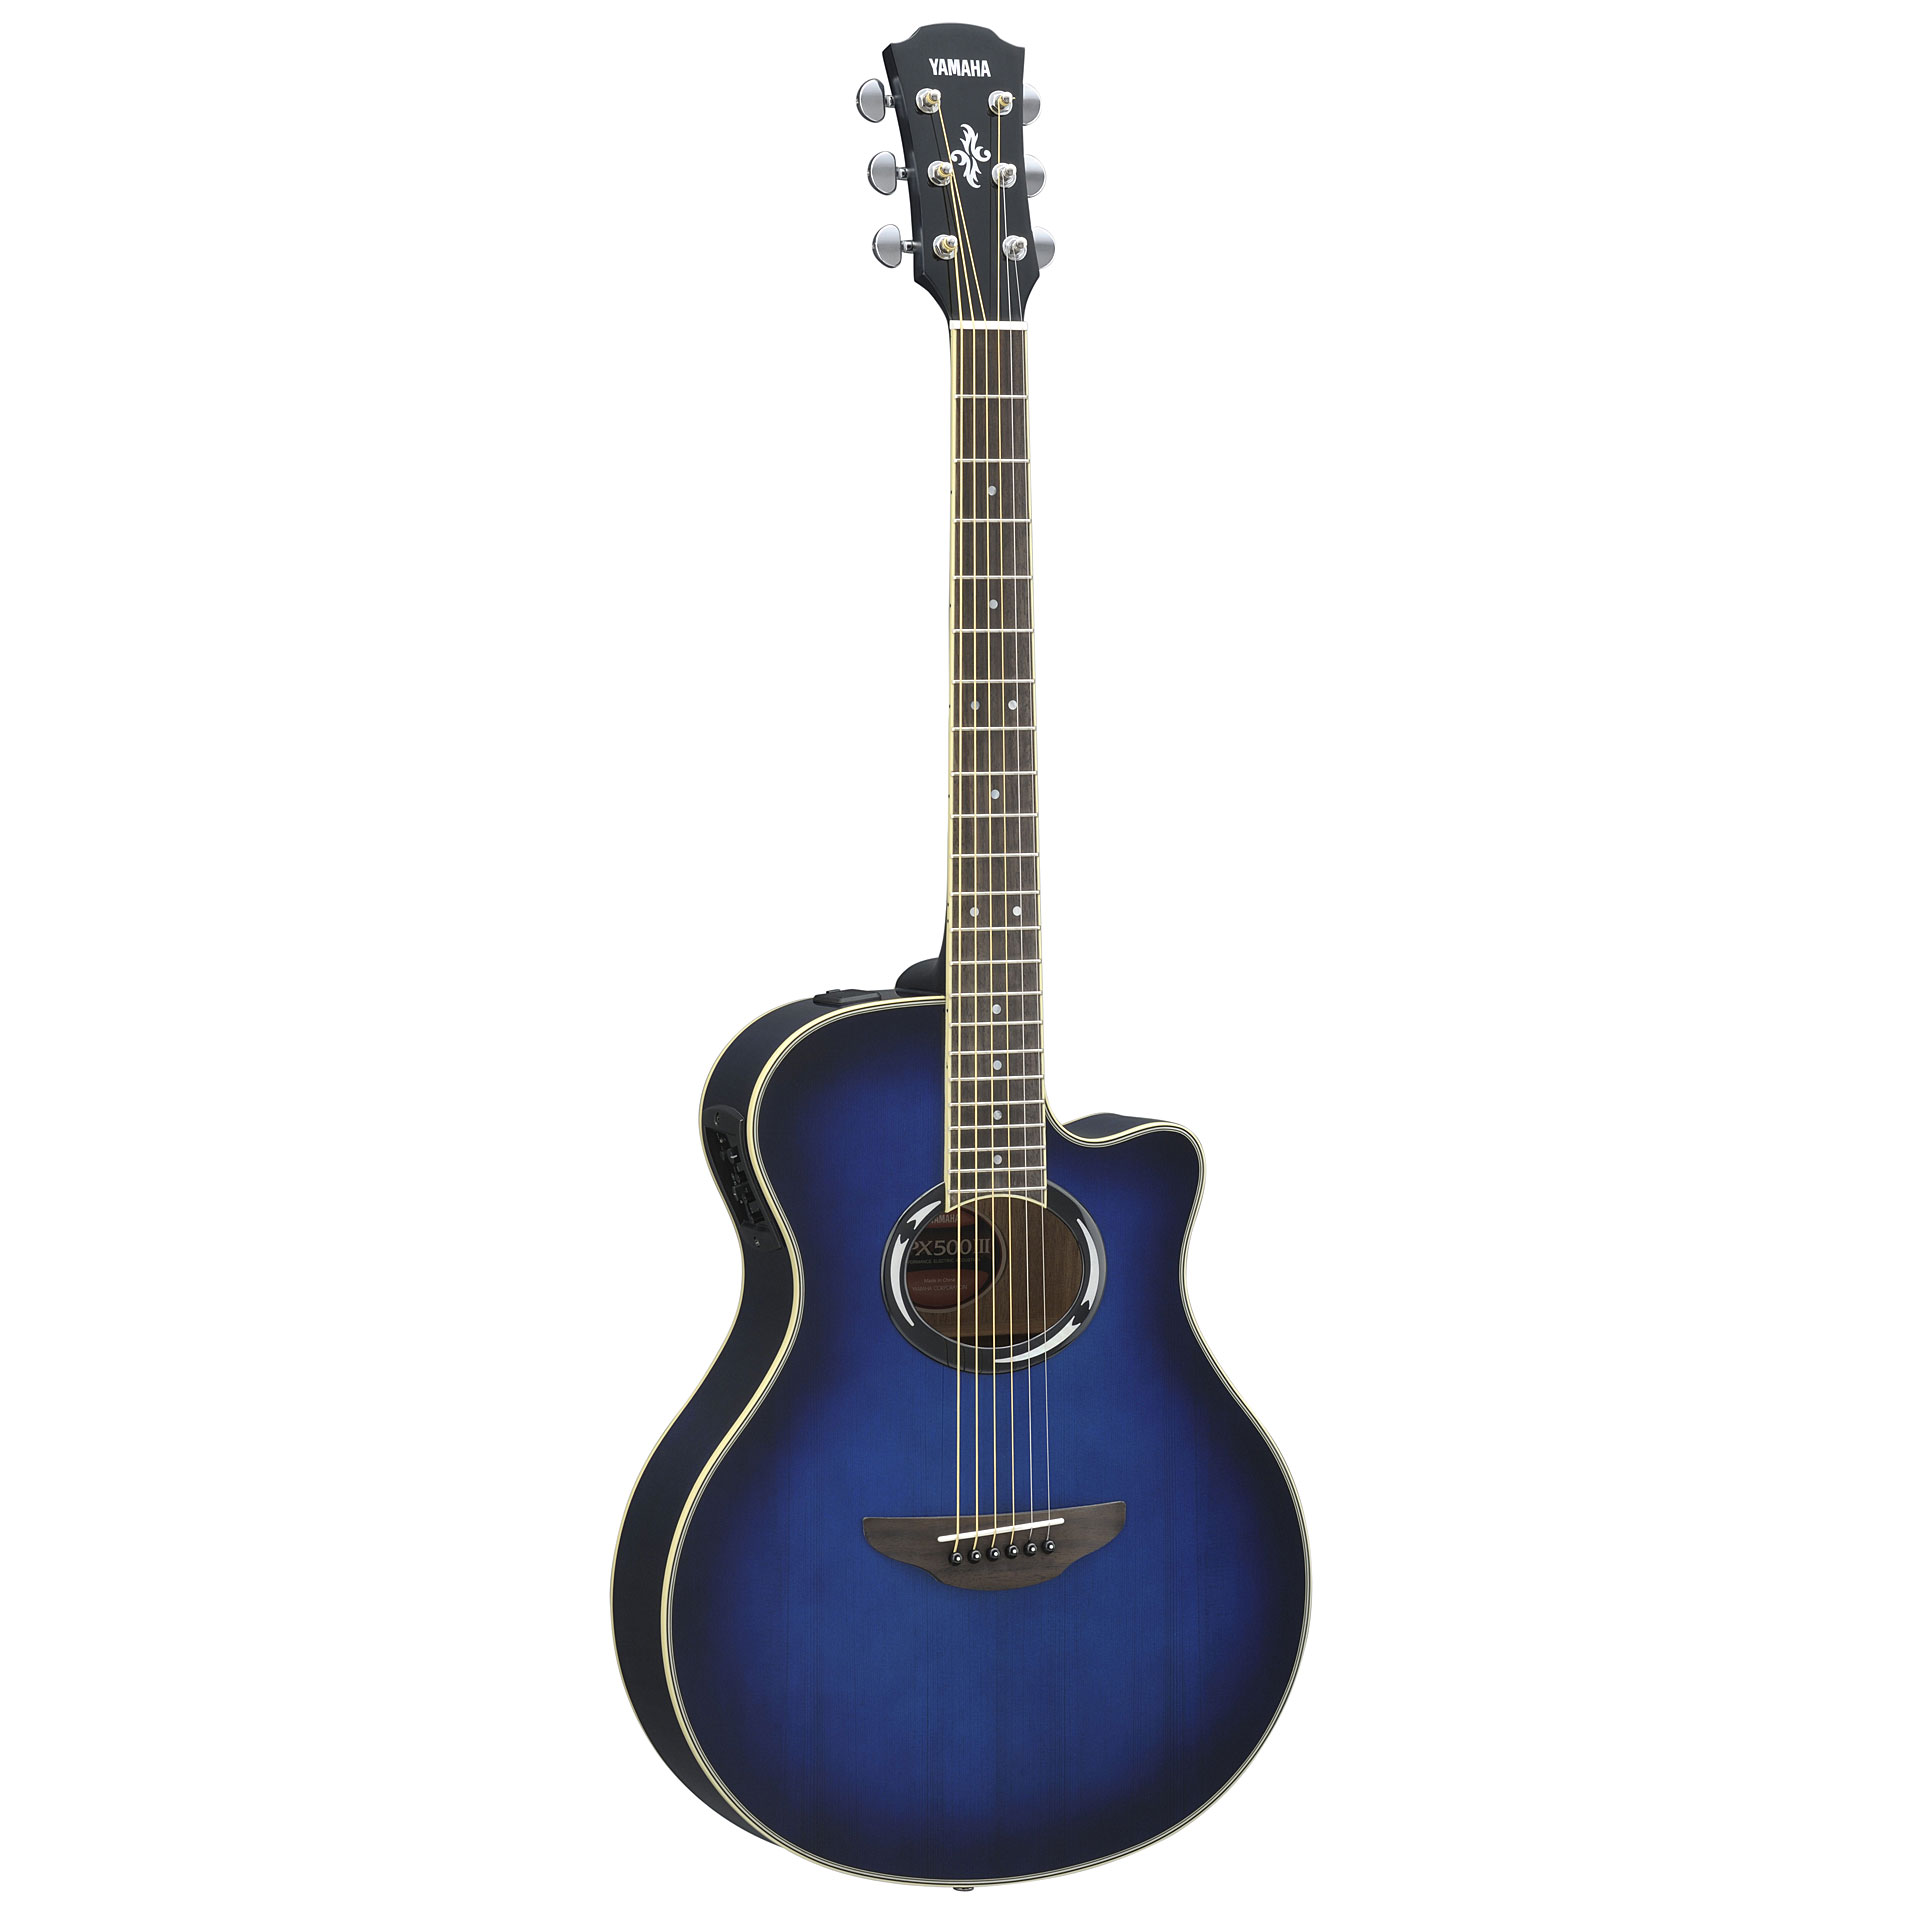 Yamaha apx500iii obb acoustic guitar for Where are yamaha guitars made